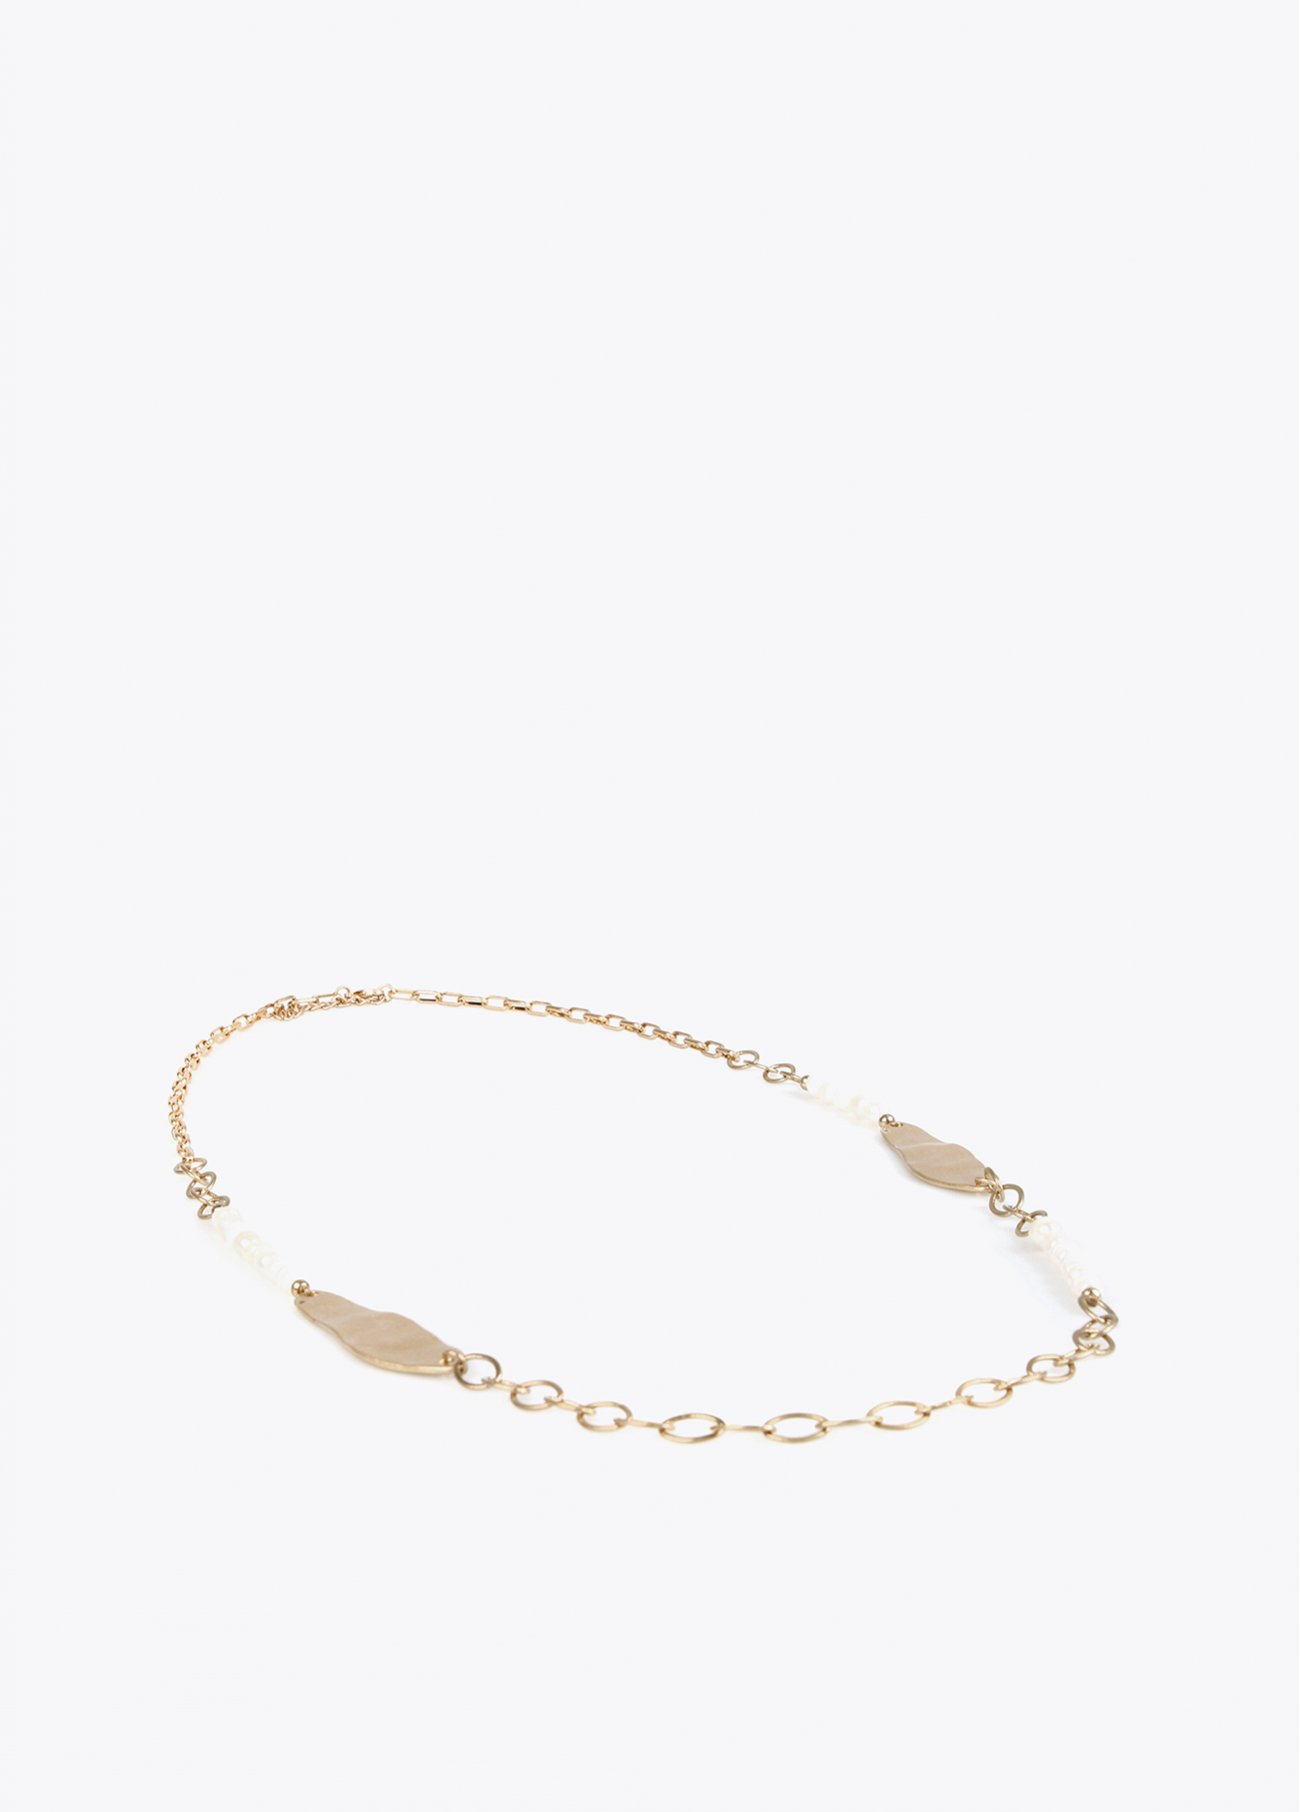 Gold chain and pearls necklace